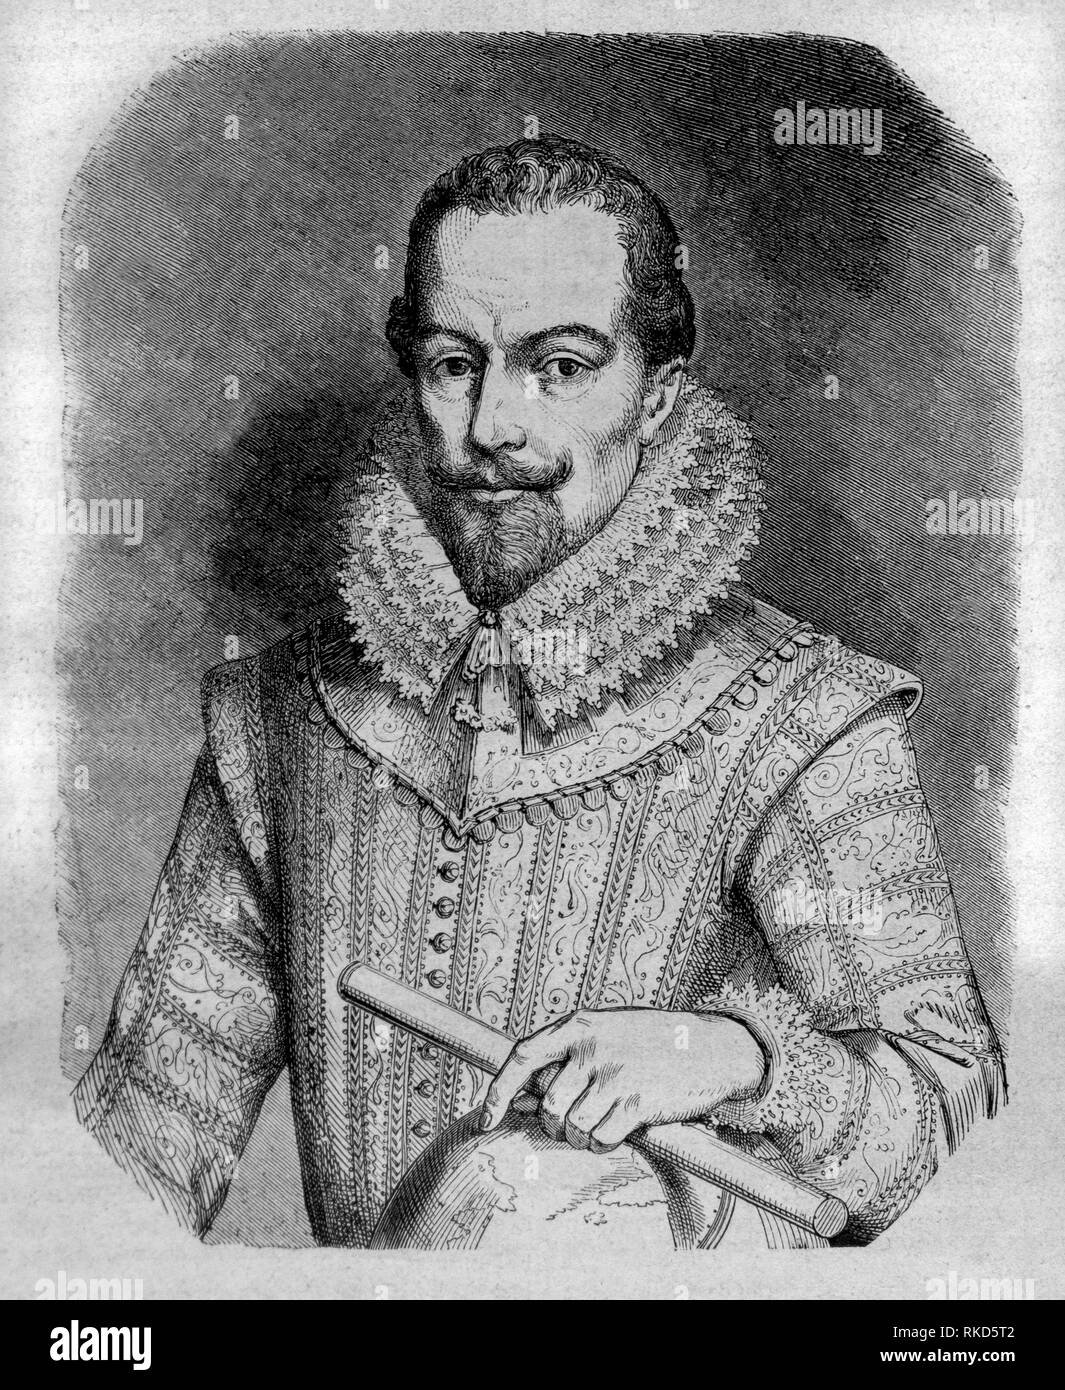 Walter Raleigh. Sir Walter Raleigh (circa 1554 - 29 October 1618) was an English landed gentleman, writer, poet, soldier, politician, courtier, spy - Stock Image